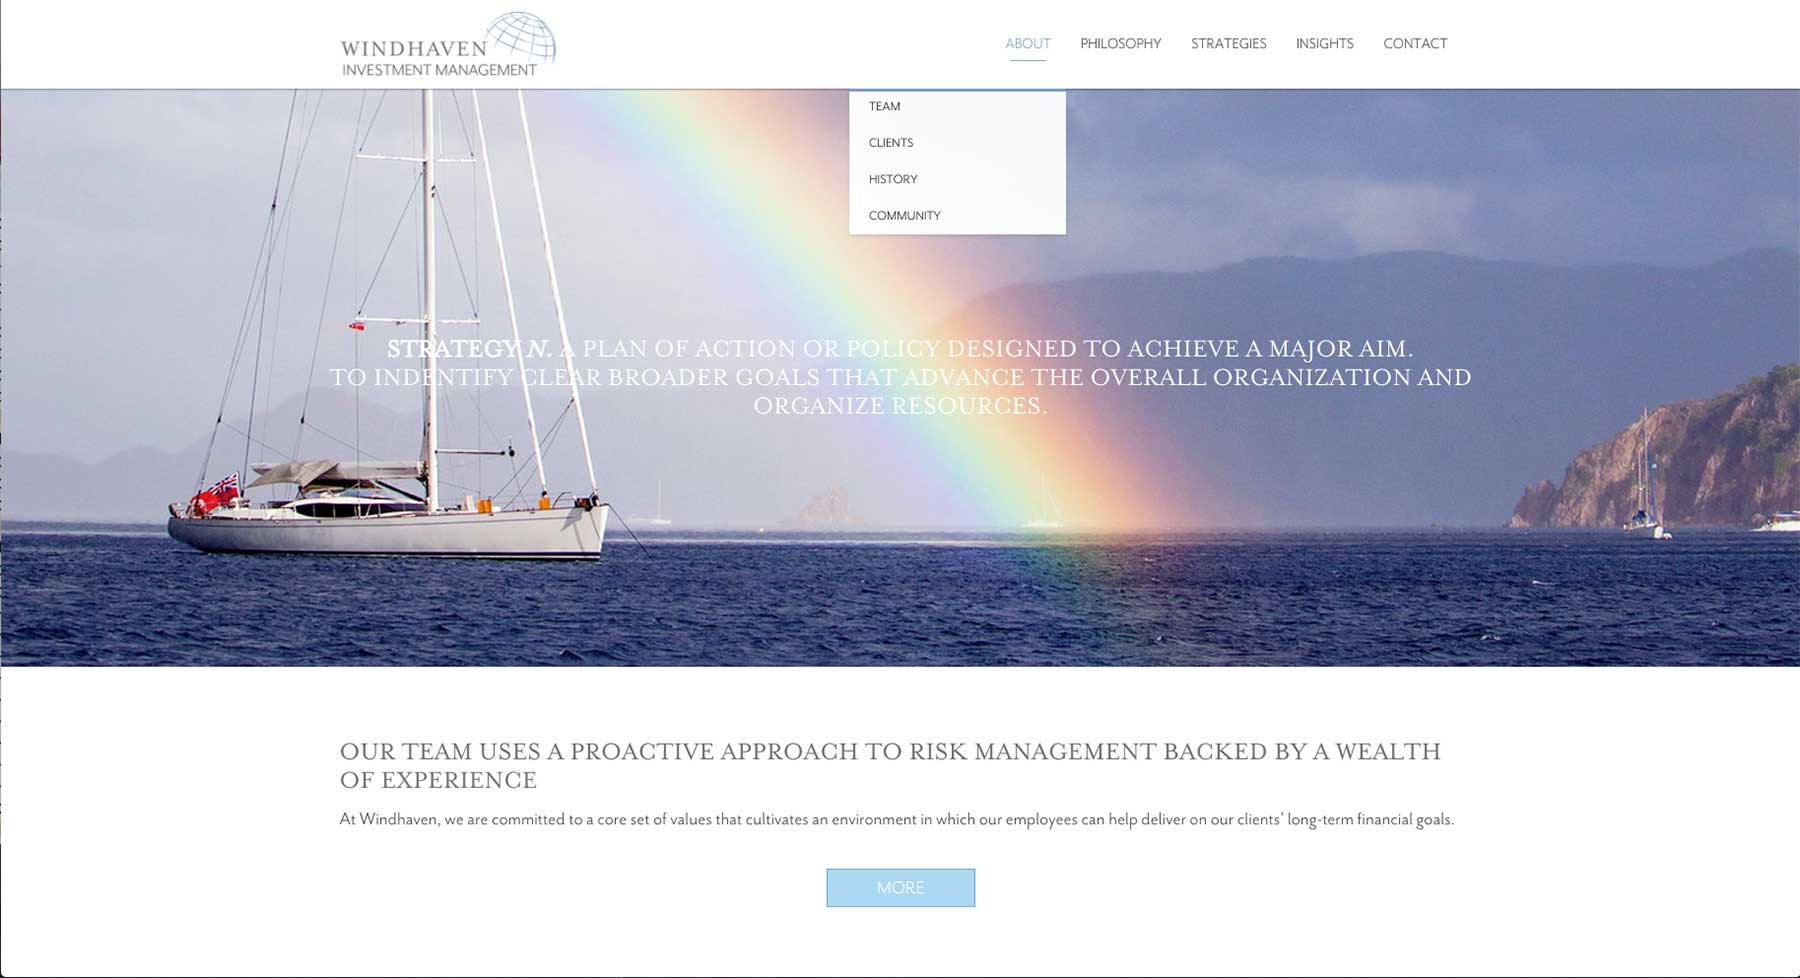 Windhaven Investment Management - About